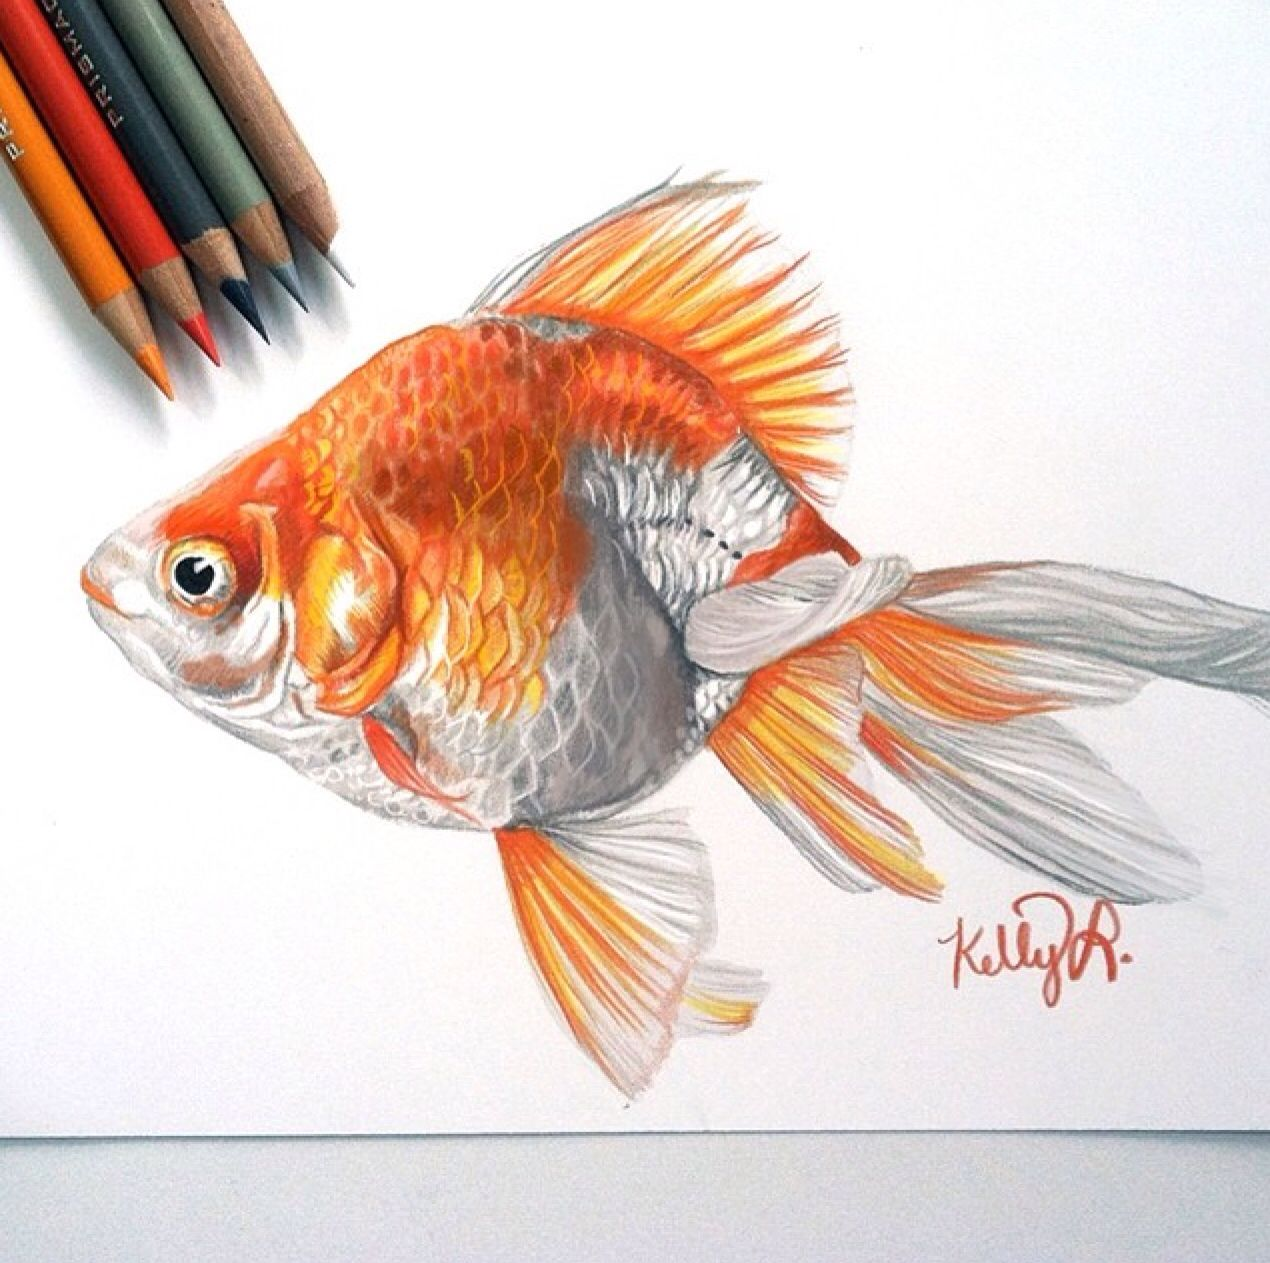 It's just a picture of Sassy Realistic Fish Drawing